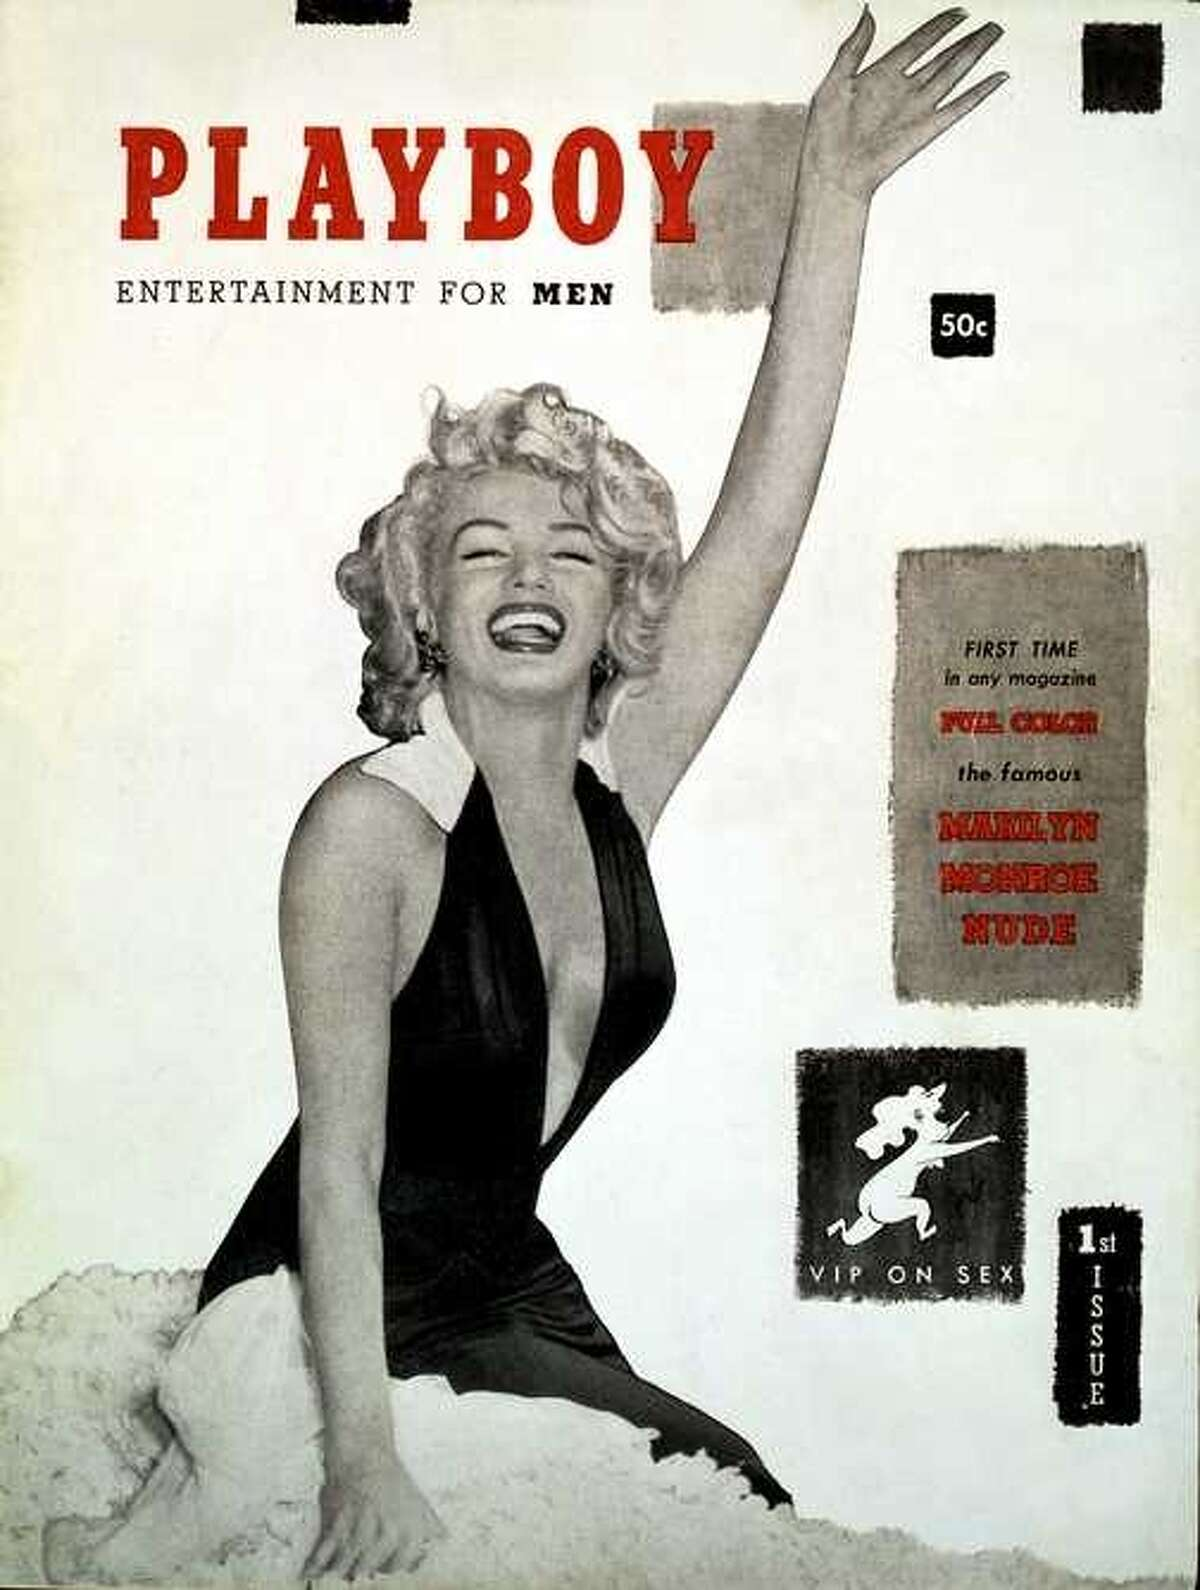 Actress Marilyn Monroe was the first Playmate of the Month in Playboy's first issue in December 1953.